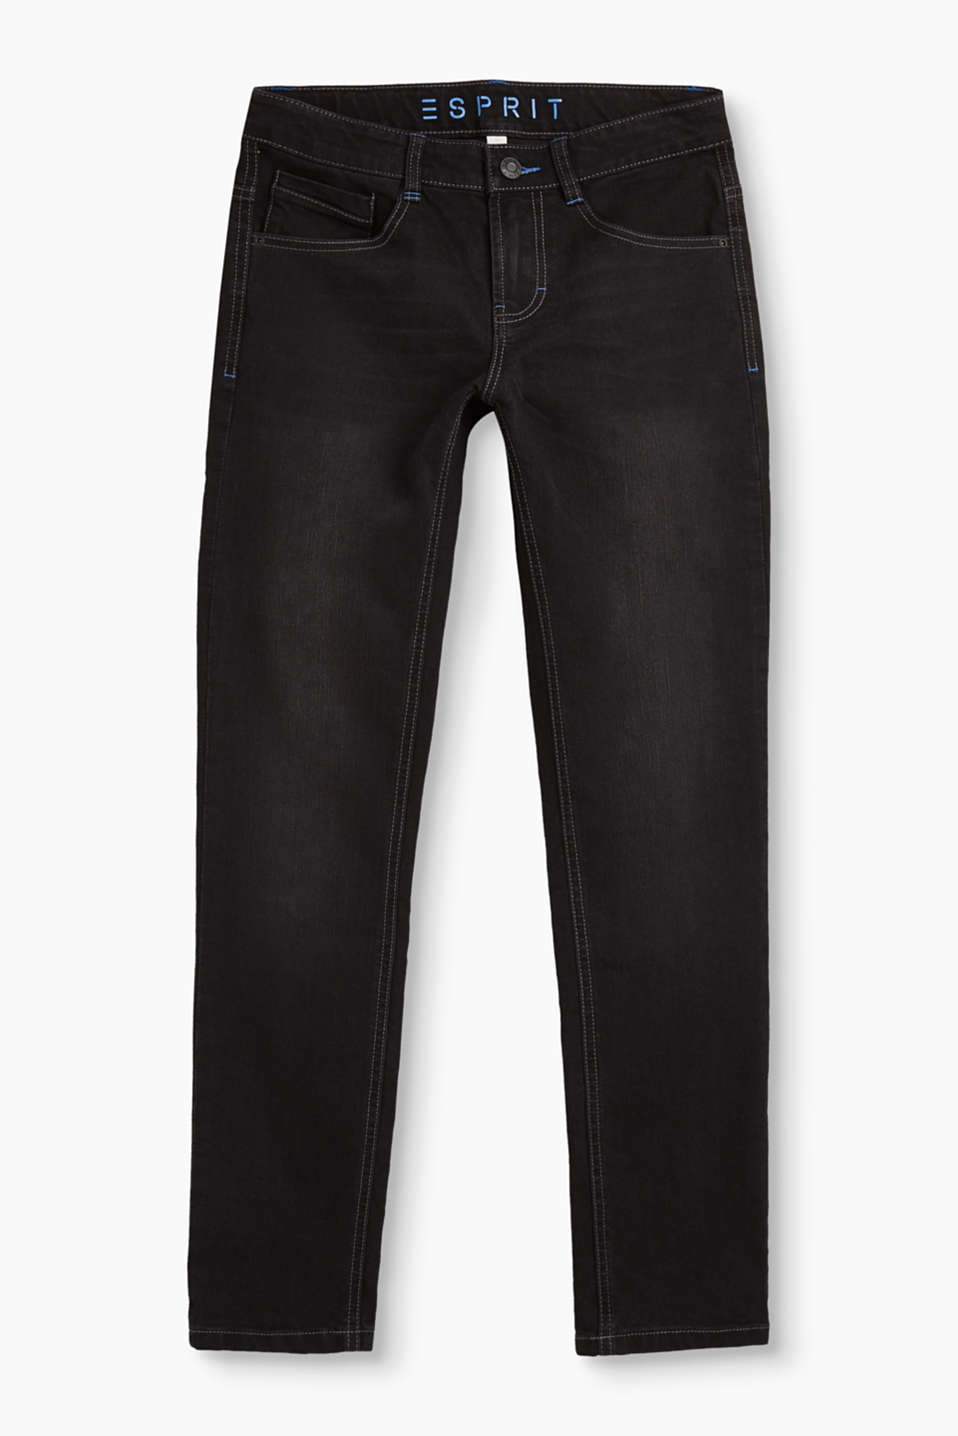 These skinny, black stretch jeans are distinguished by their cool, faded finish and blue stitching.